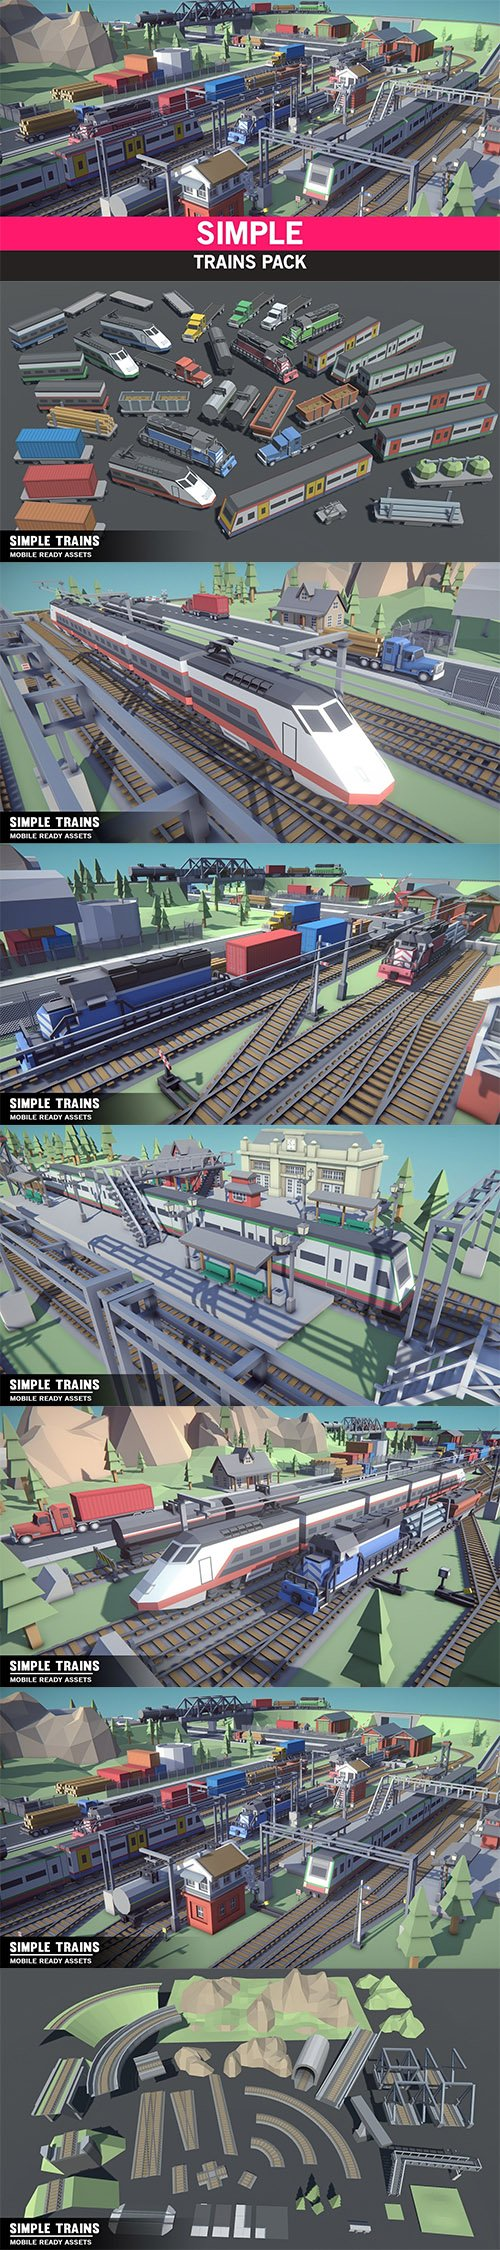 Simple Trains - Cartoon Assets Low-poly 3D model